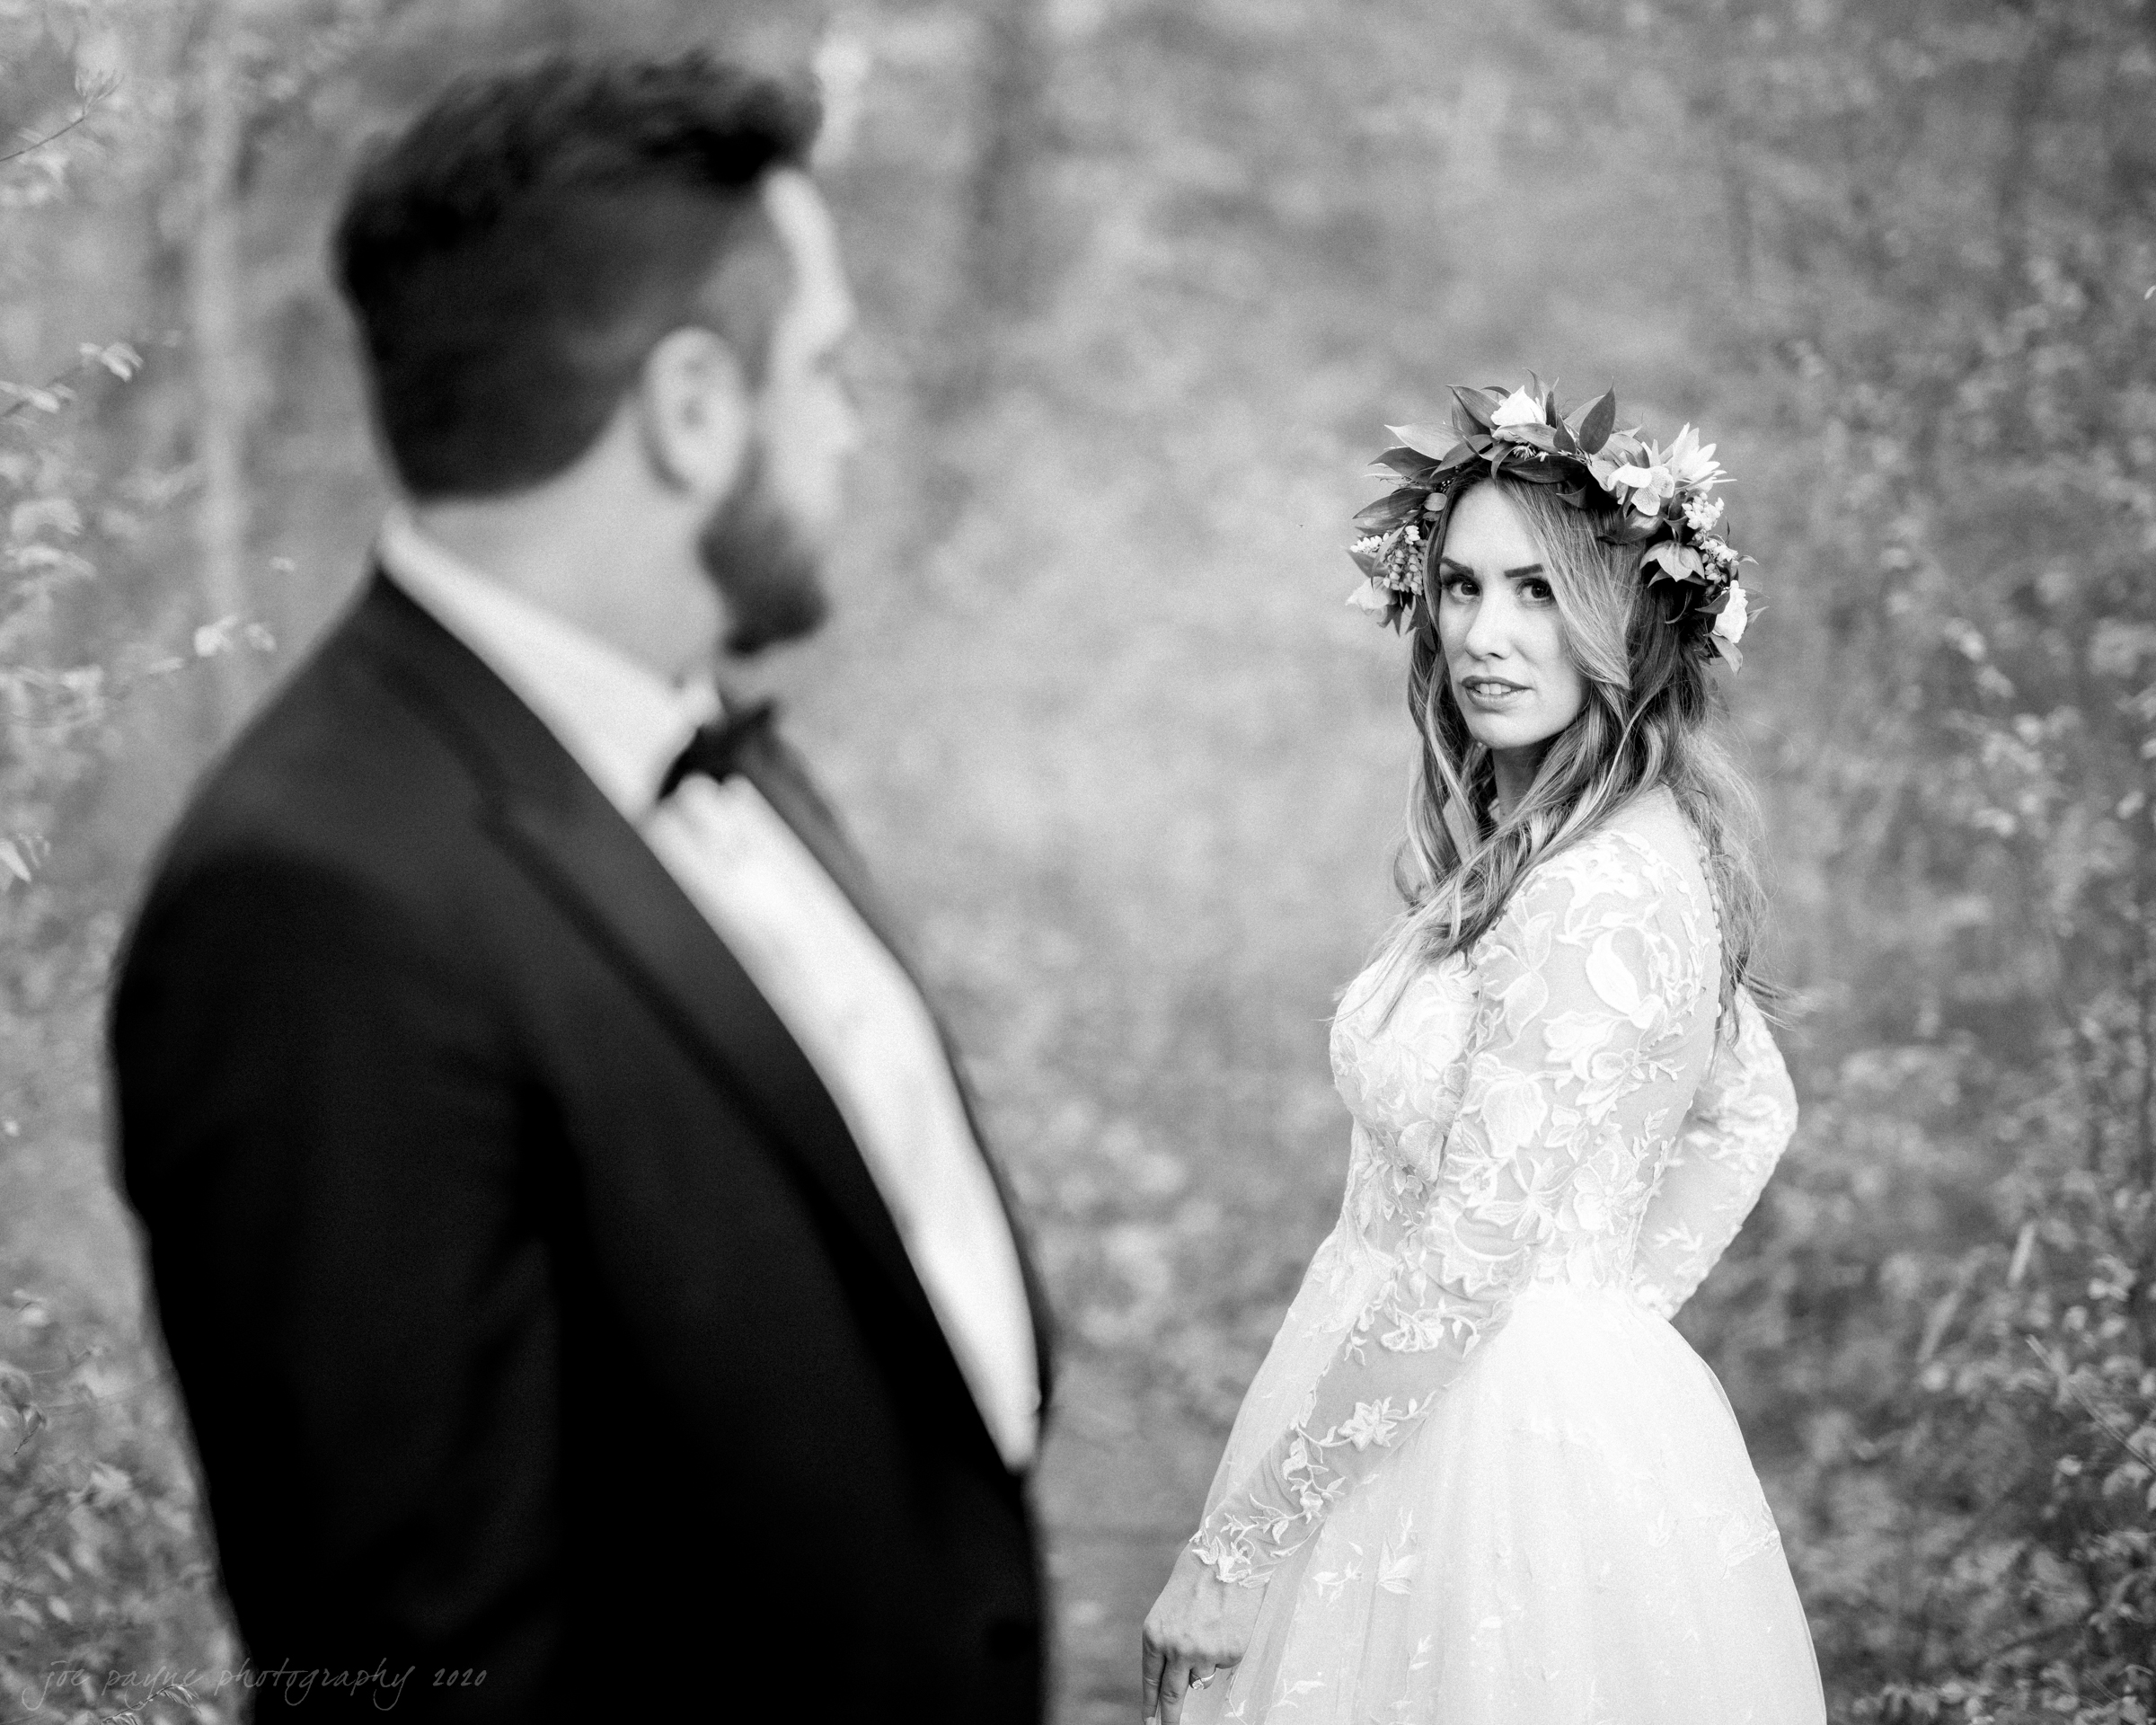 umstead hotel park wedding photography brittany harrison 40